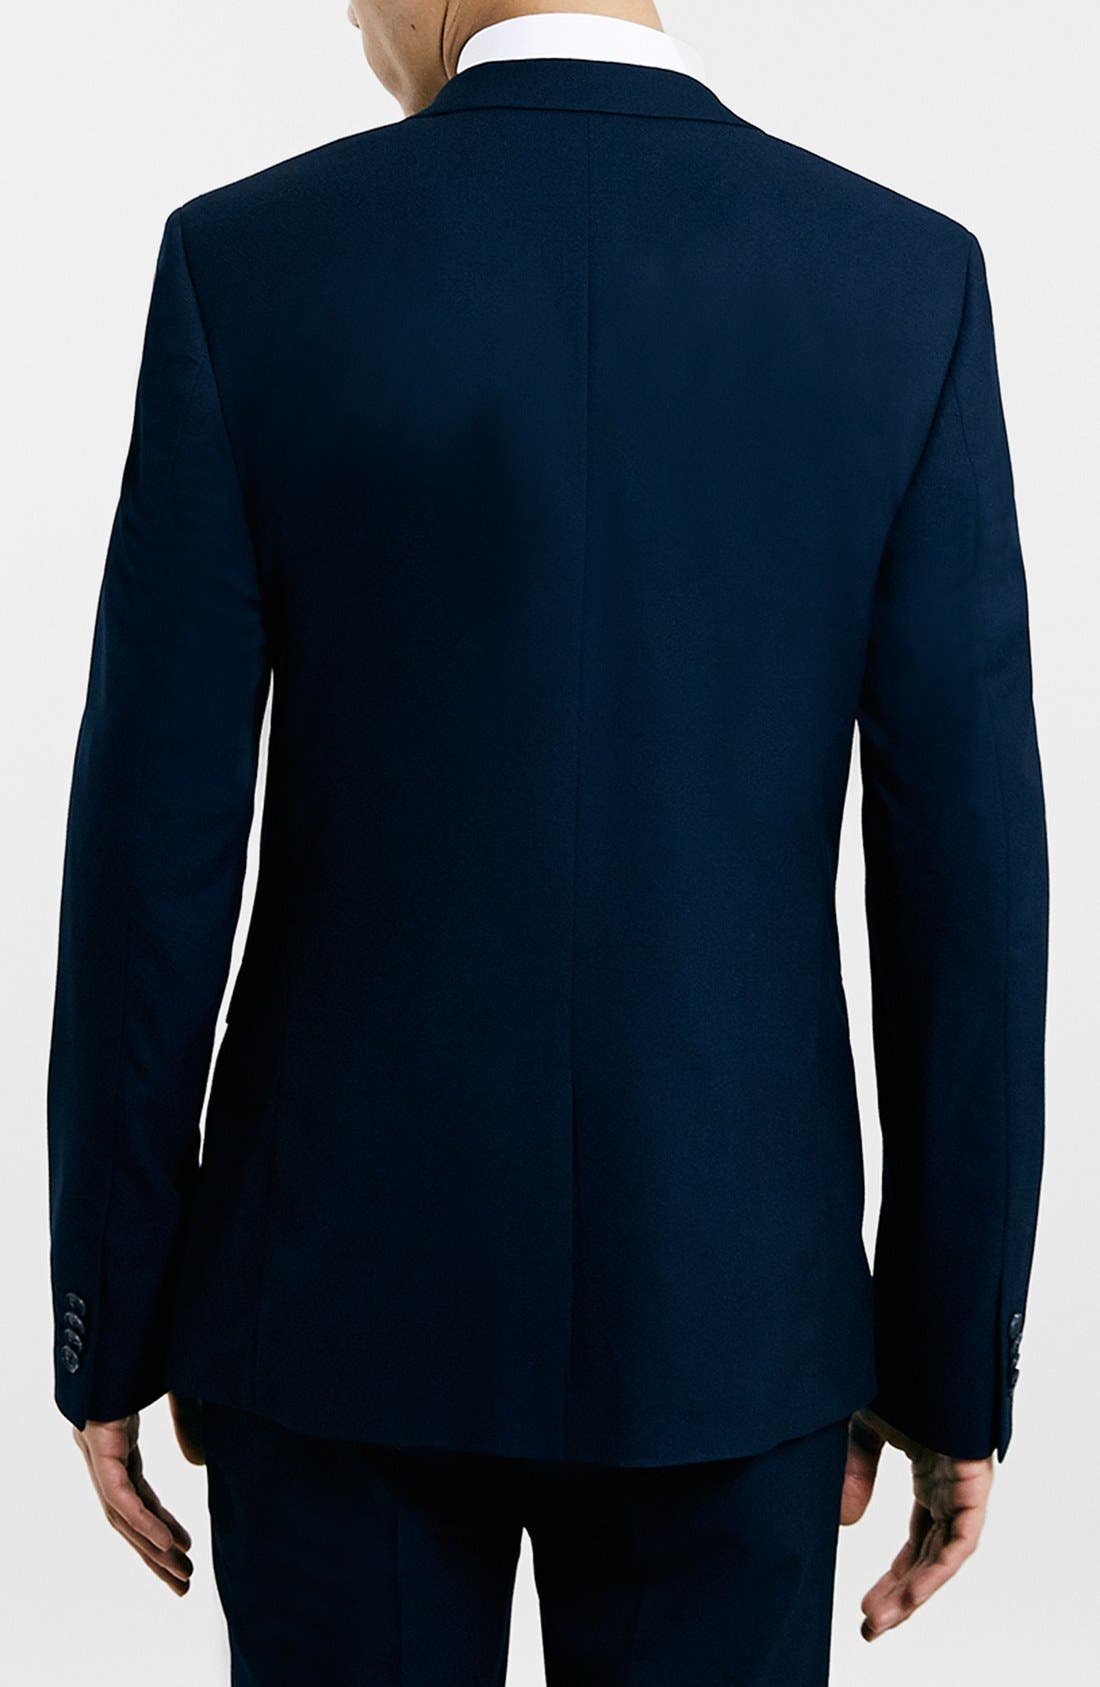 TOPMAN, Navy Textured Skinny Fit Suit Jacket, Alternate thumbnail 2, color, 410